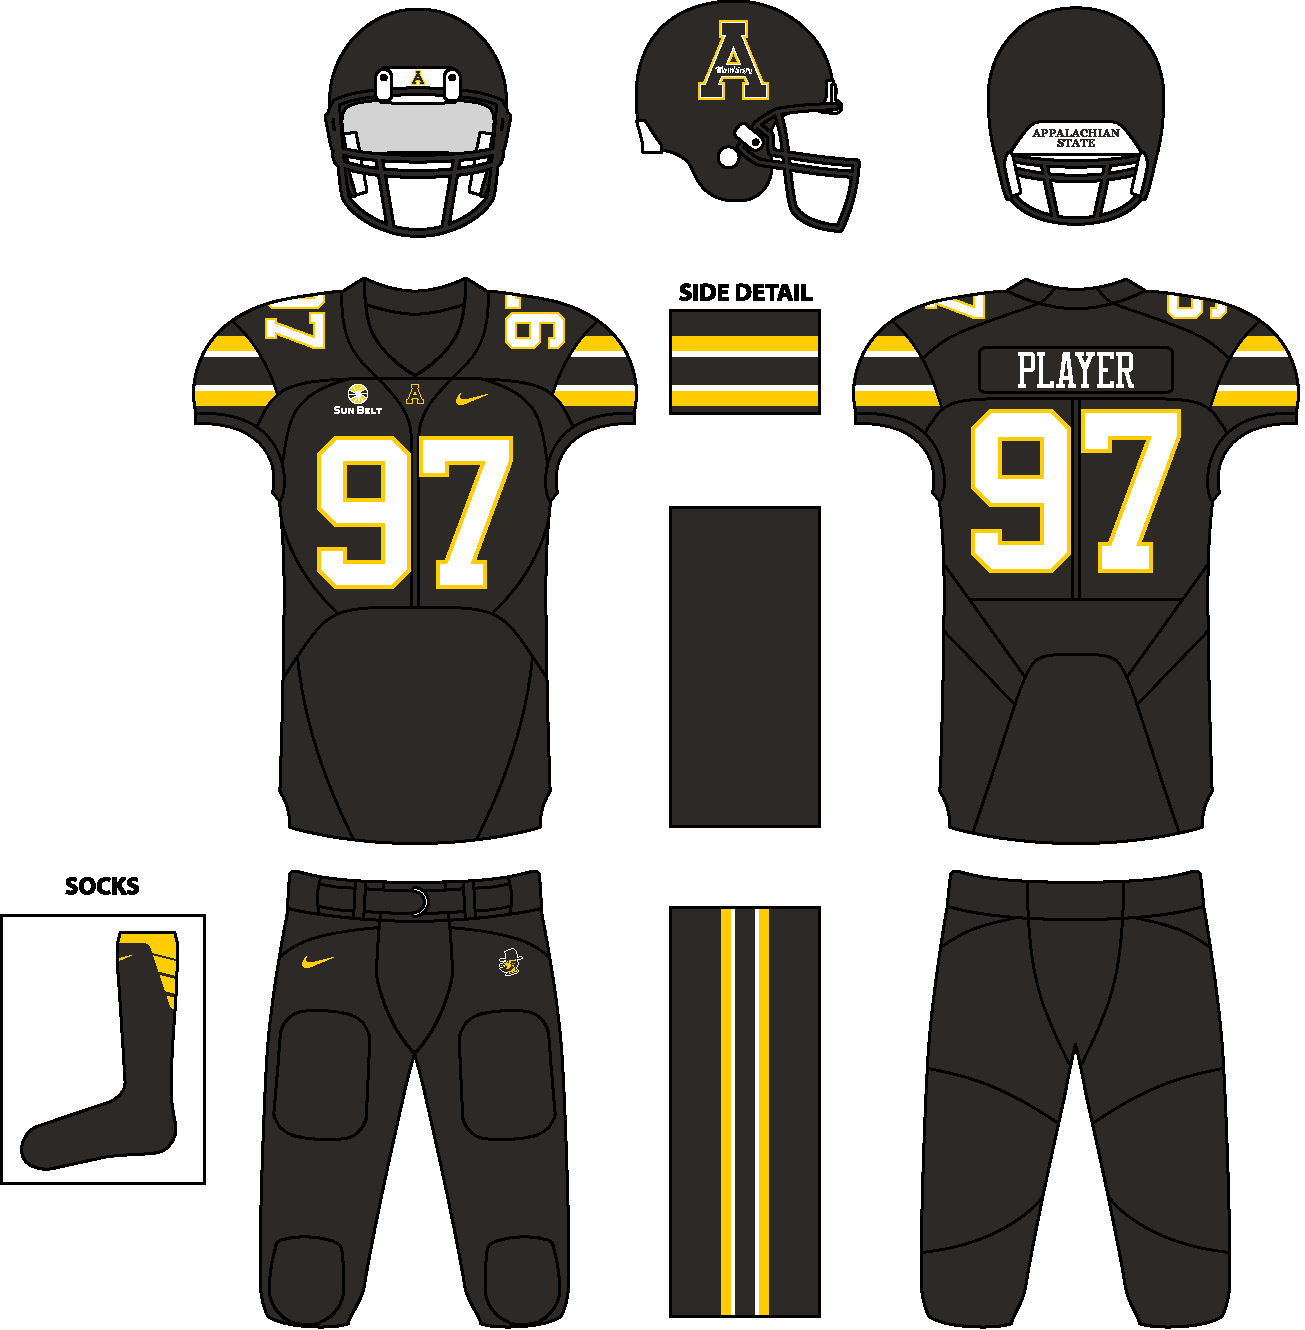 NCAA Division I FBS Concept Uniforms (Done in Paint) - Page